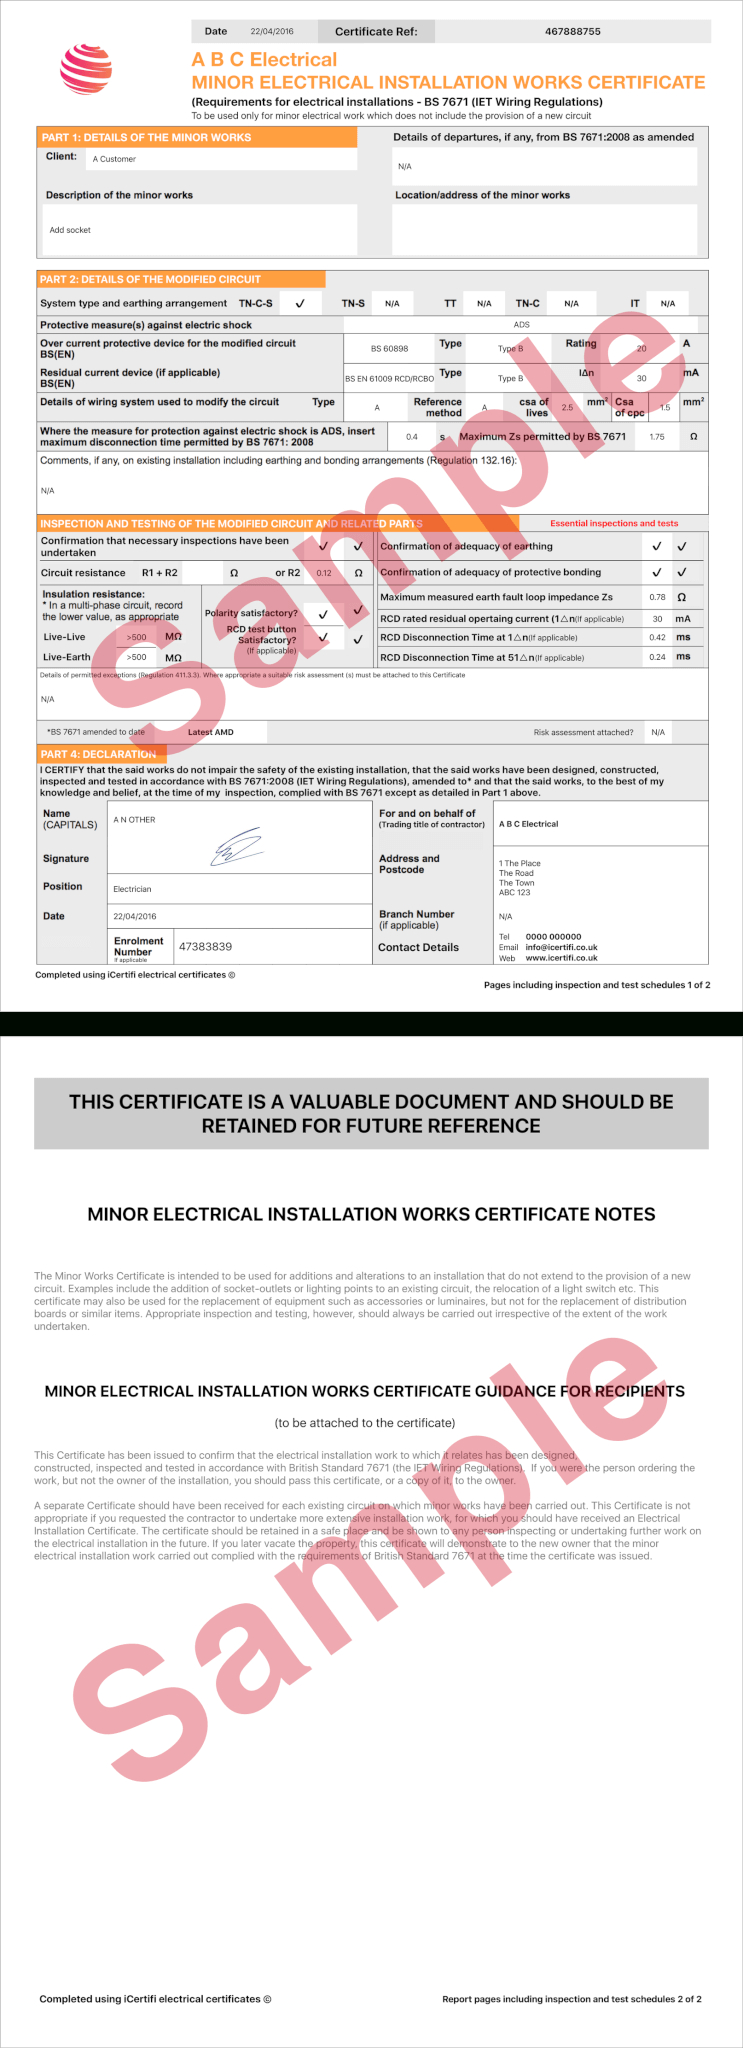 Electrical Certificate - Example Minor Works Certificate With Regard To Minor Electrical Installation Works Certificate Template